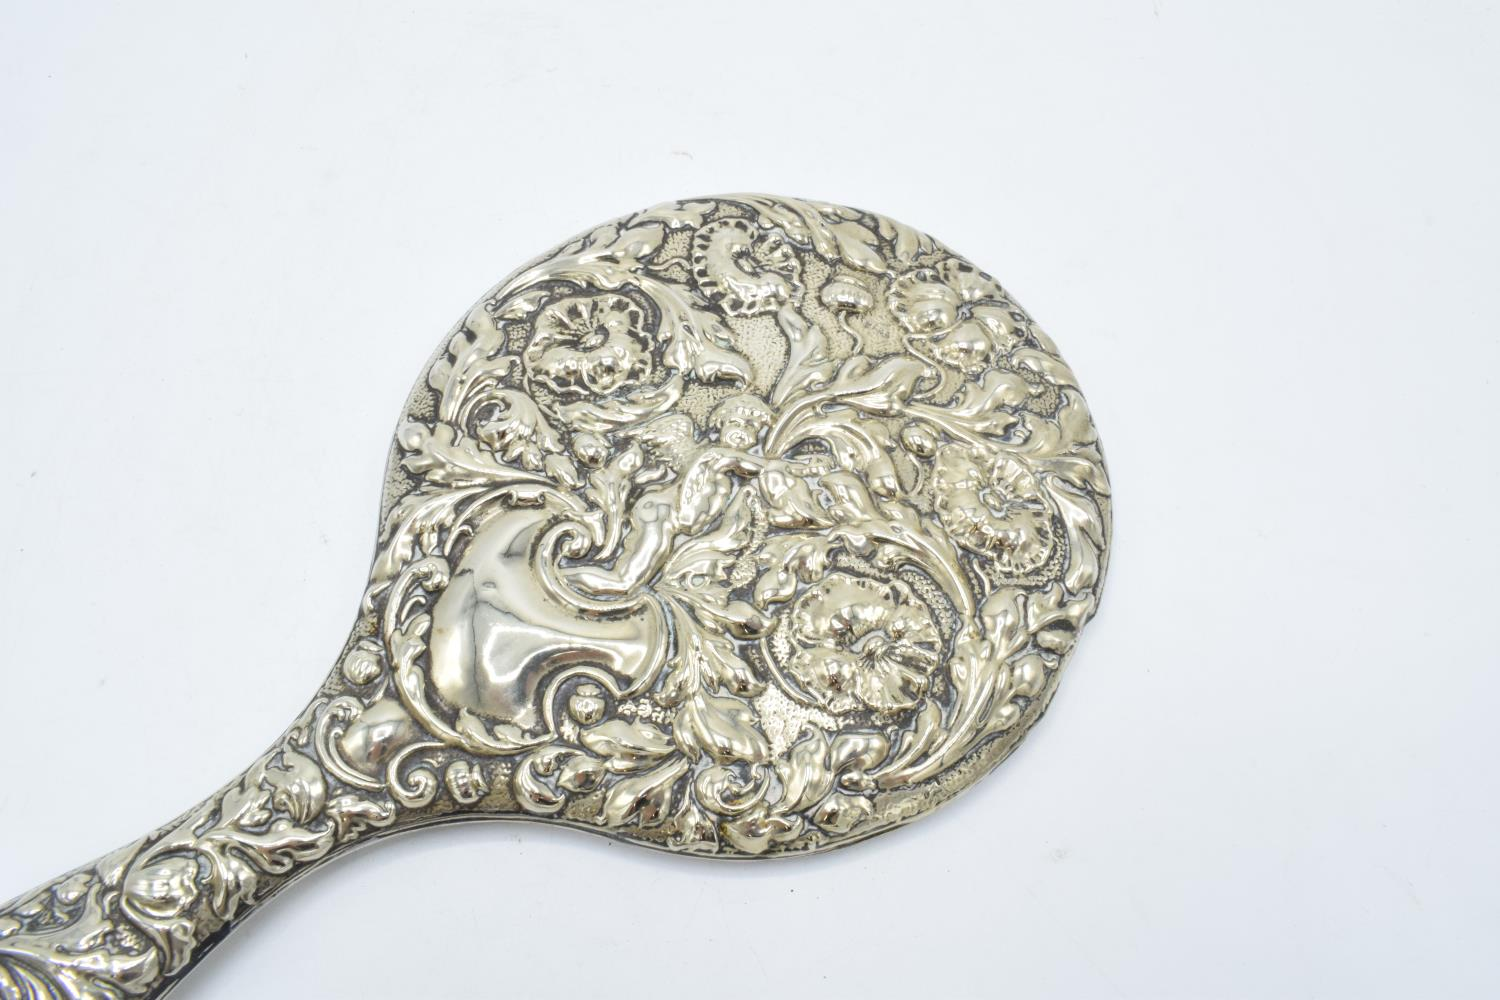 An ornate embossed hand mirror, assumed silver plate. - Image 4 of 4